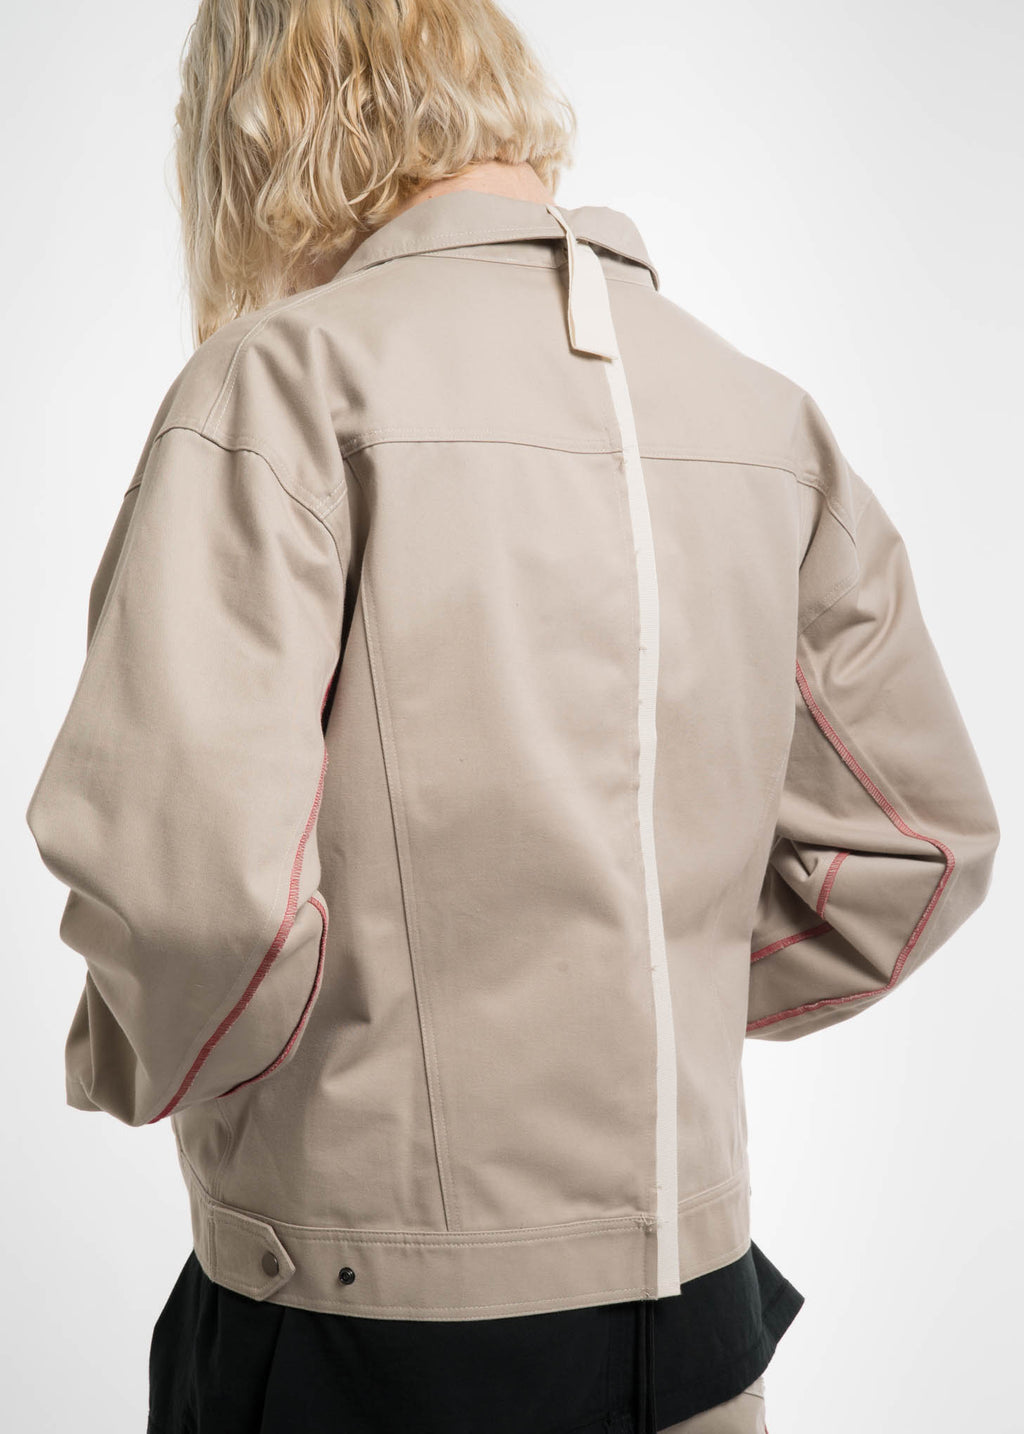 Komakino, Beige Type 2 Split Jacket, 017 Shop